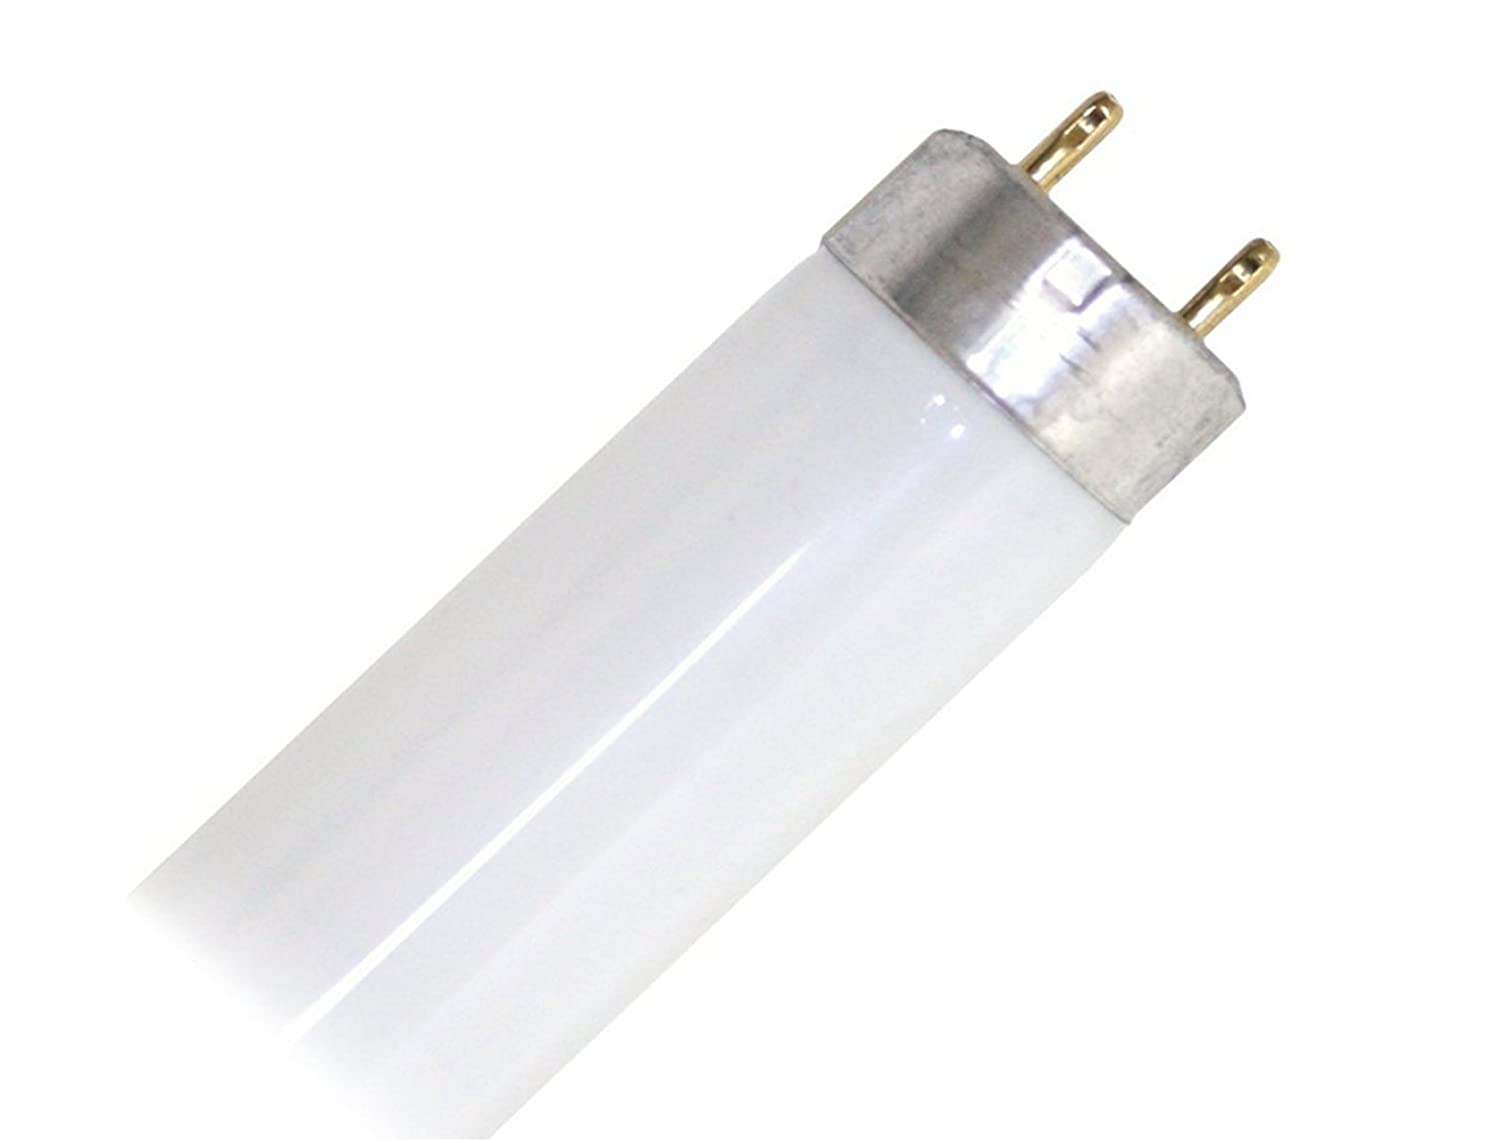 Sylvania 21600 F15T8 D Daylight 15 Watt T8 Fluorescent Tube Light Bulb 6500K Full Spectrum Preheat Lamp Replaces F15T8 F15T8 XL SPX65 F15T8 SPX65 F15T8 D TP F15T8 SUN F15T8 DL F15T8 Daylight